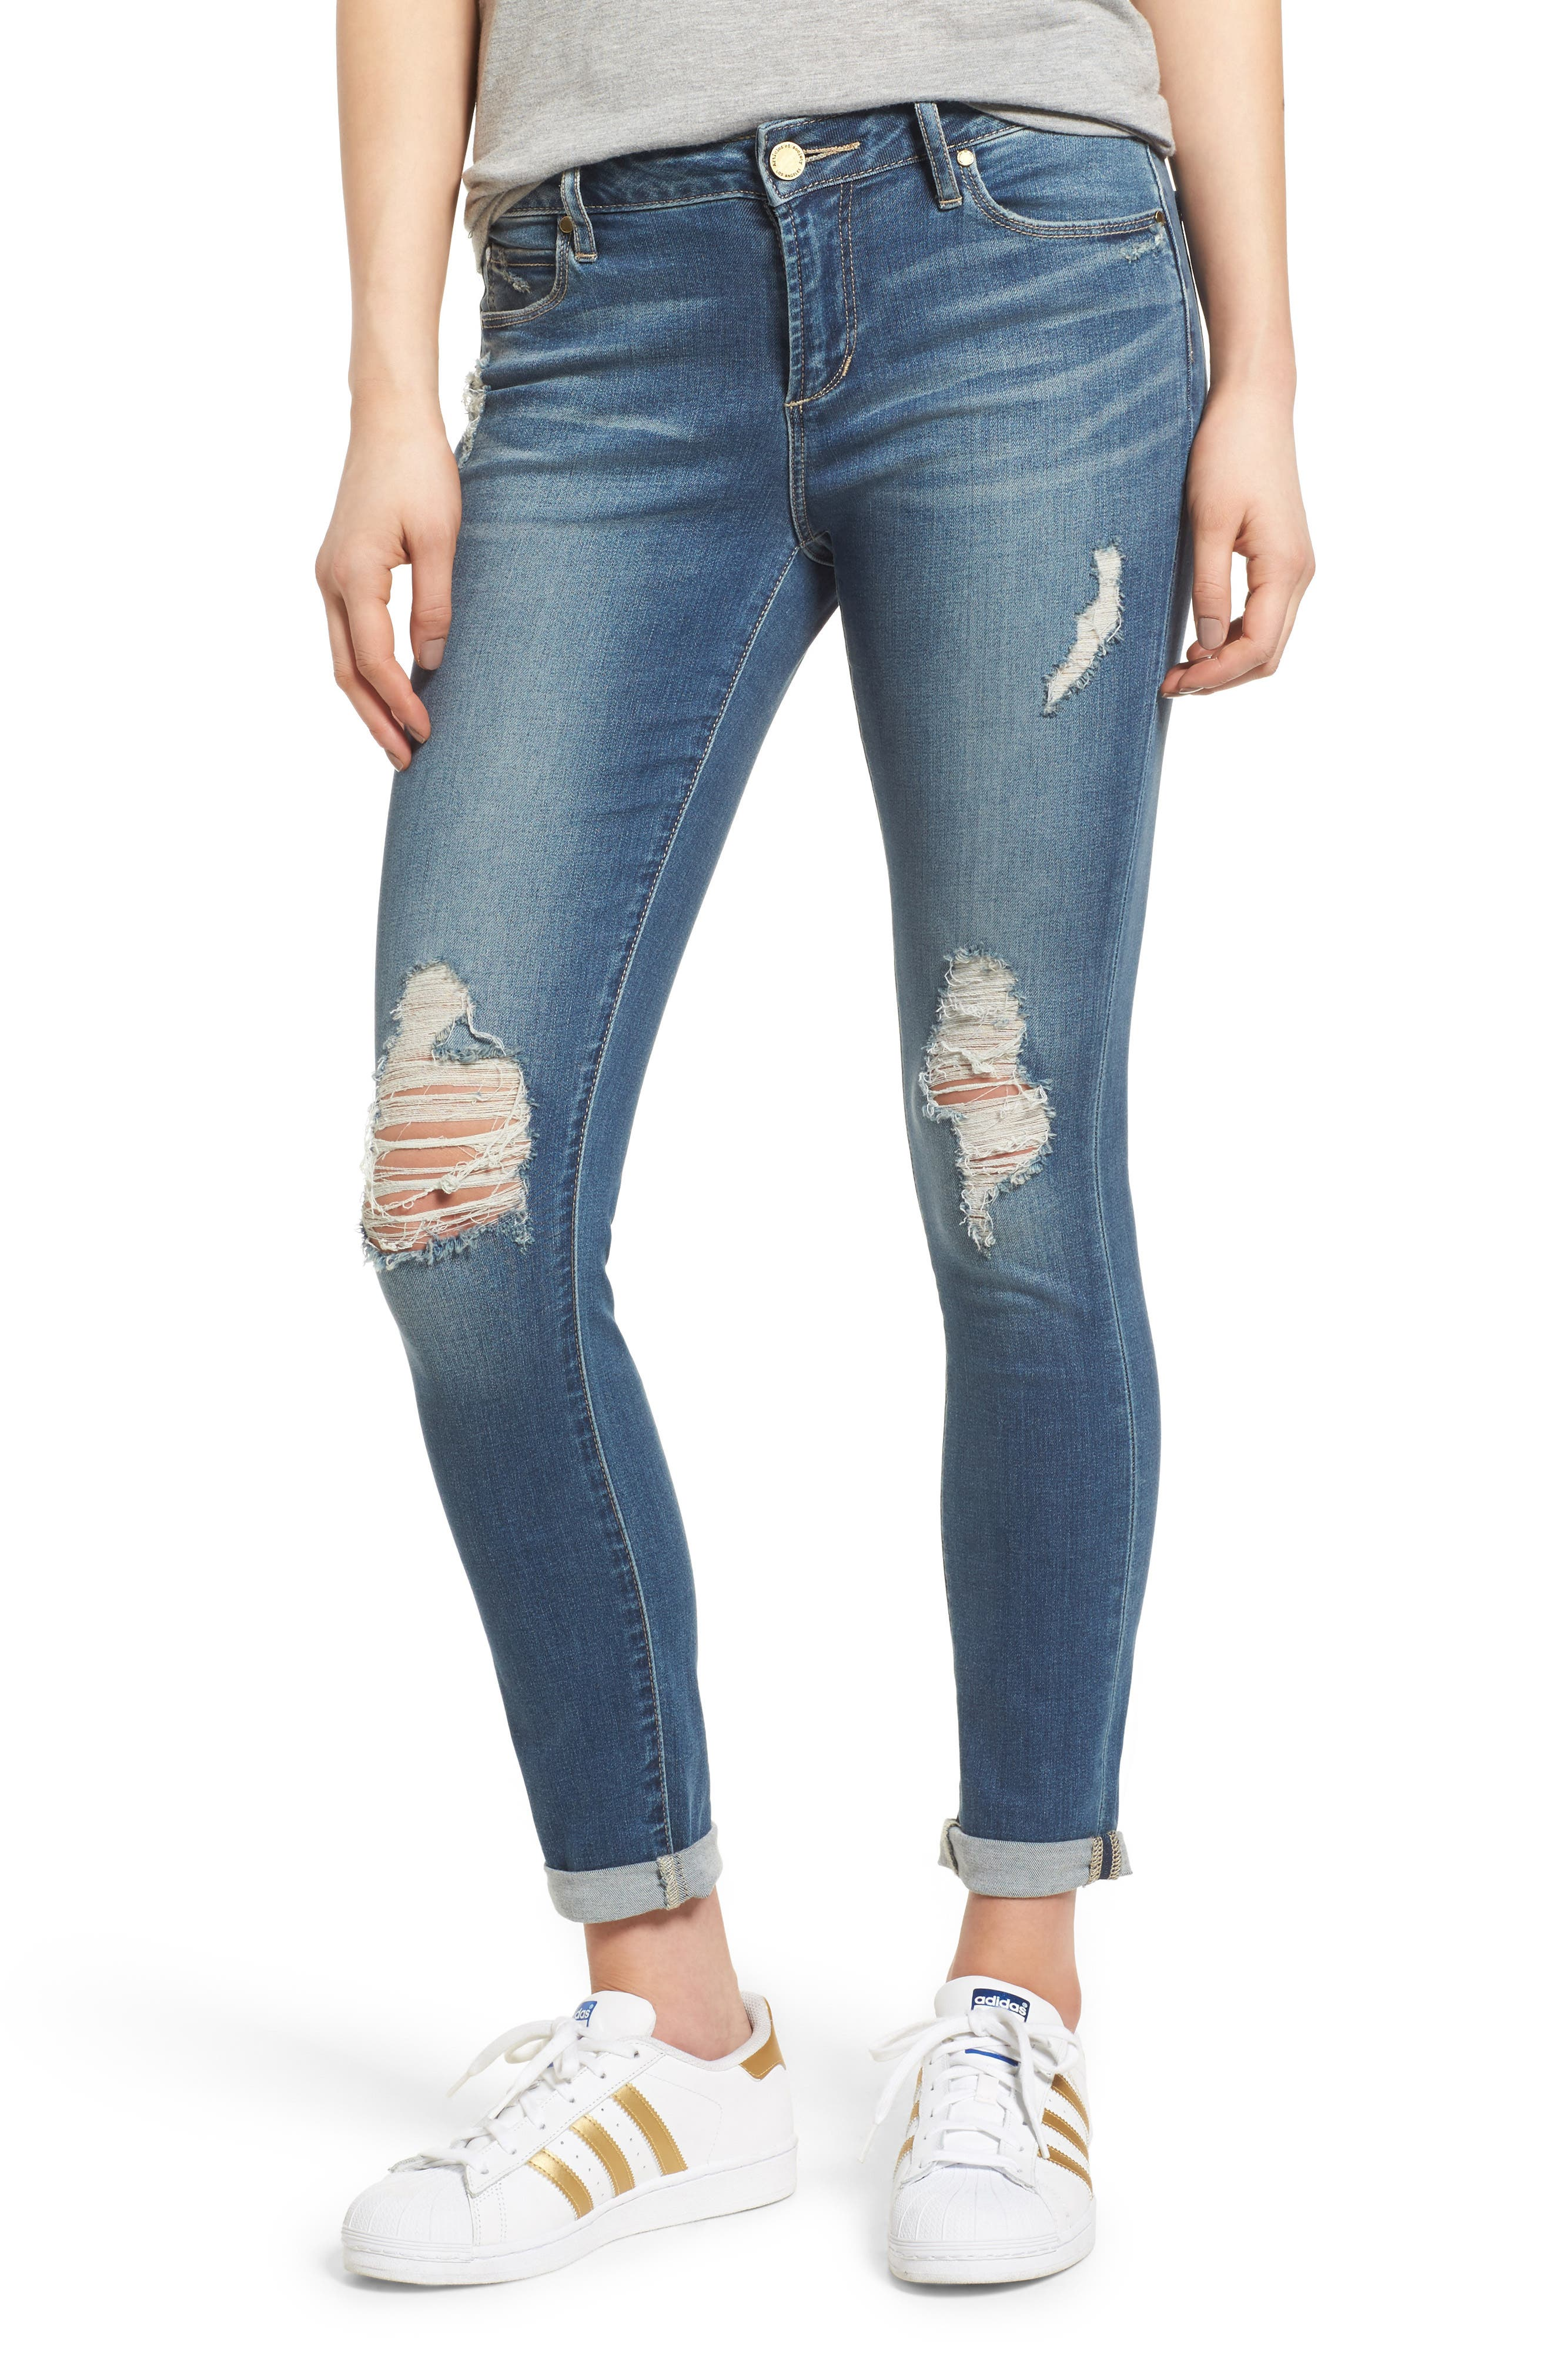 ARTICLES OF SOCIETY Karen Ripped Crop Skinny Jeans, Main, color, 400